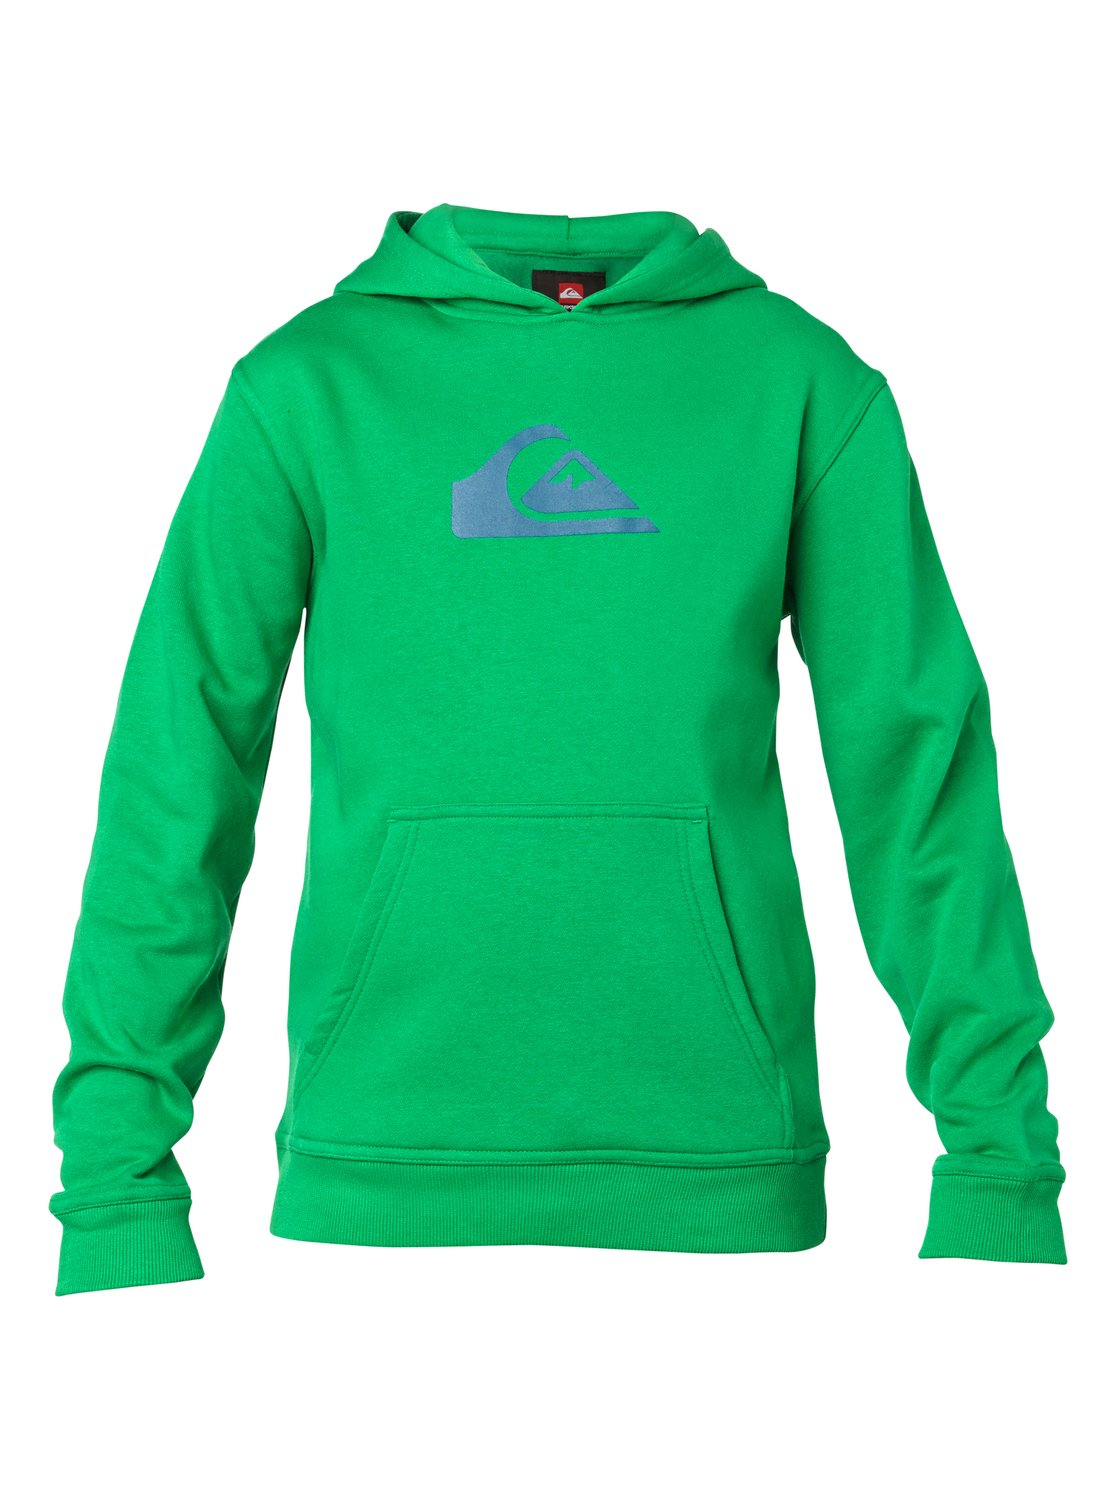 Hood Rib Good Youth G5 от Quiksilver RU